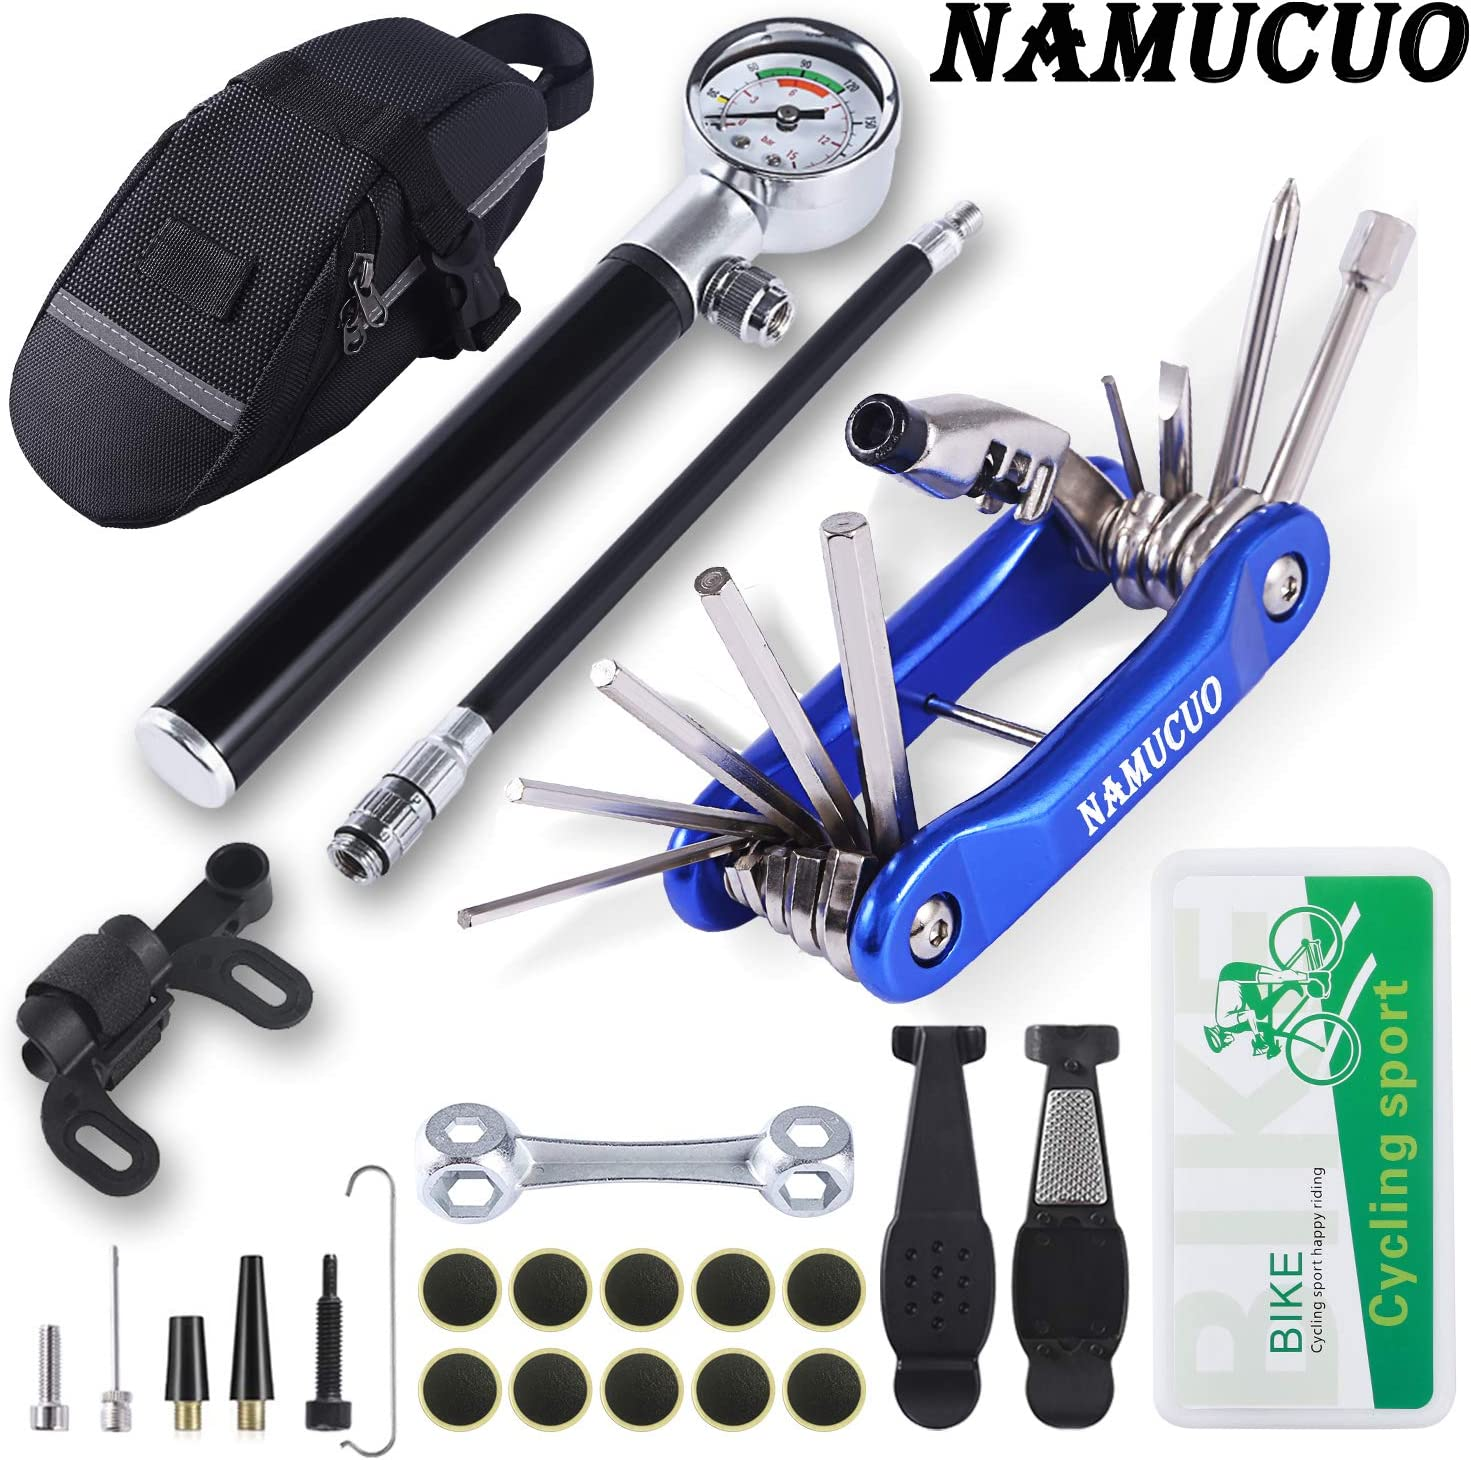 YBEKI NAMUCUO Bike Tyre Repair Tool Kit - Bicycle Tool kit with 210 Psi Mini Pump 10-in-1 Multi-Tool(with Chain Breaker), Tyre Levers &Tire Patch, Bone Wrench, 1 Saddle Bag. 6 Month Warranty : Sports & Outdoors